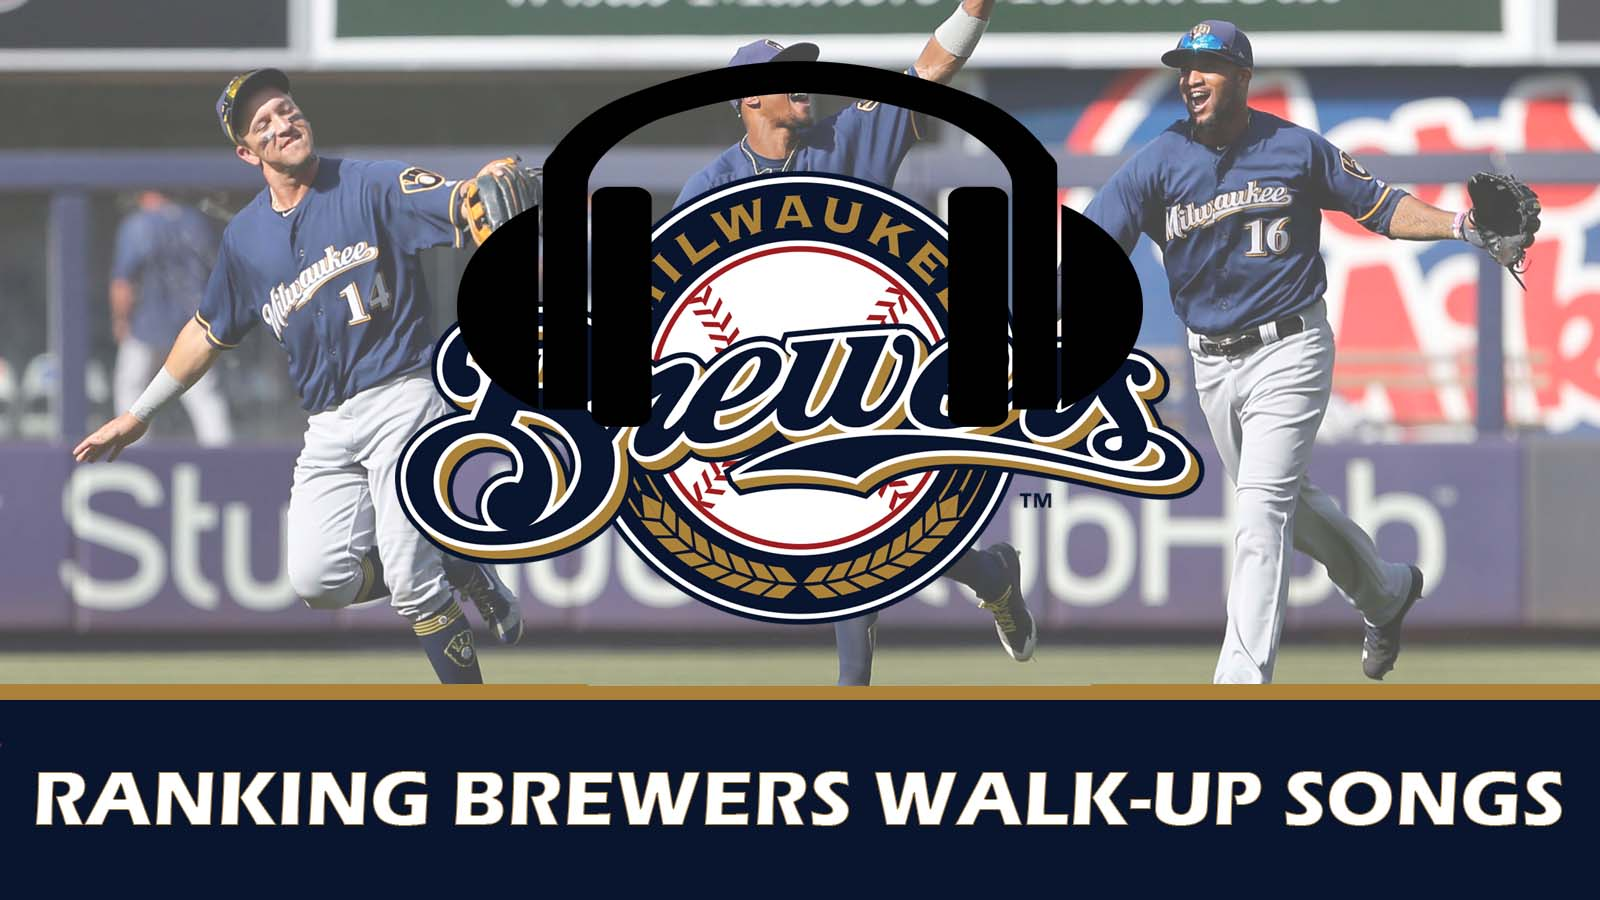 pi-fsw-brewers-ranking-walk-up-songs-071317